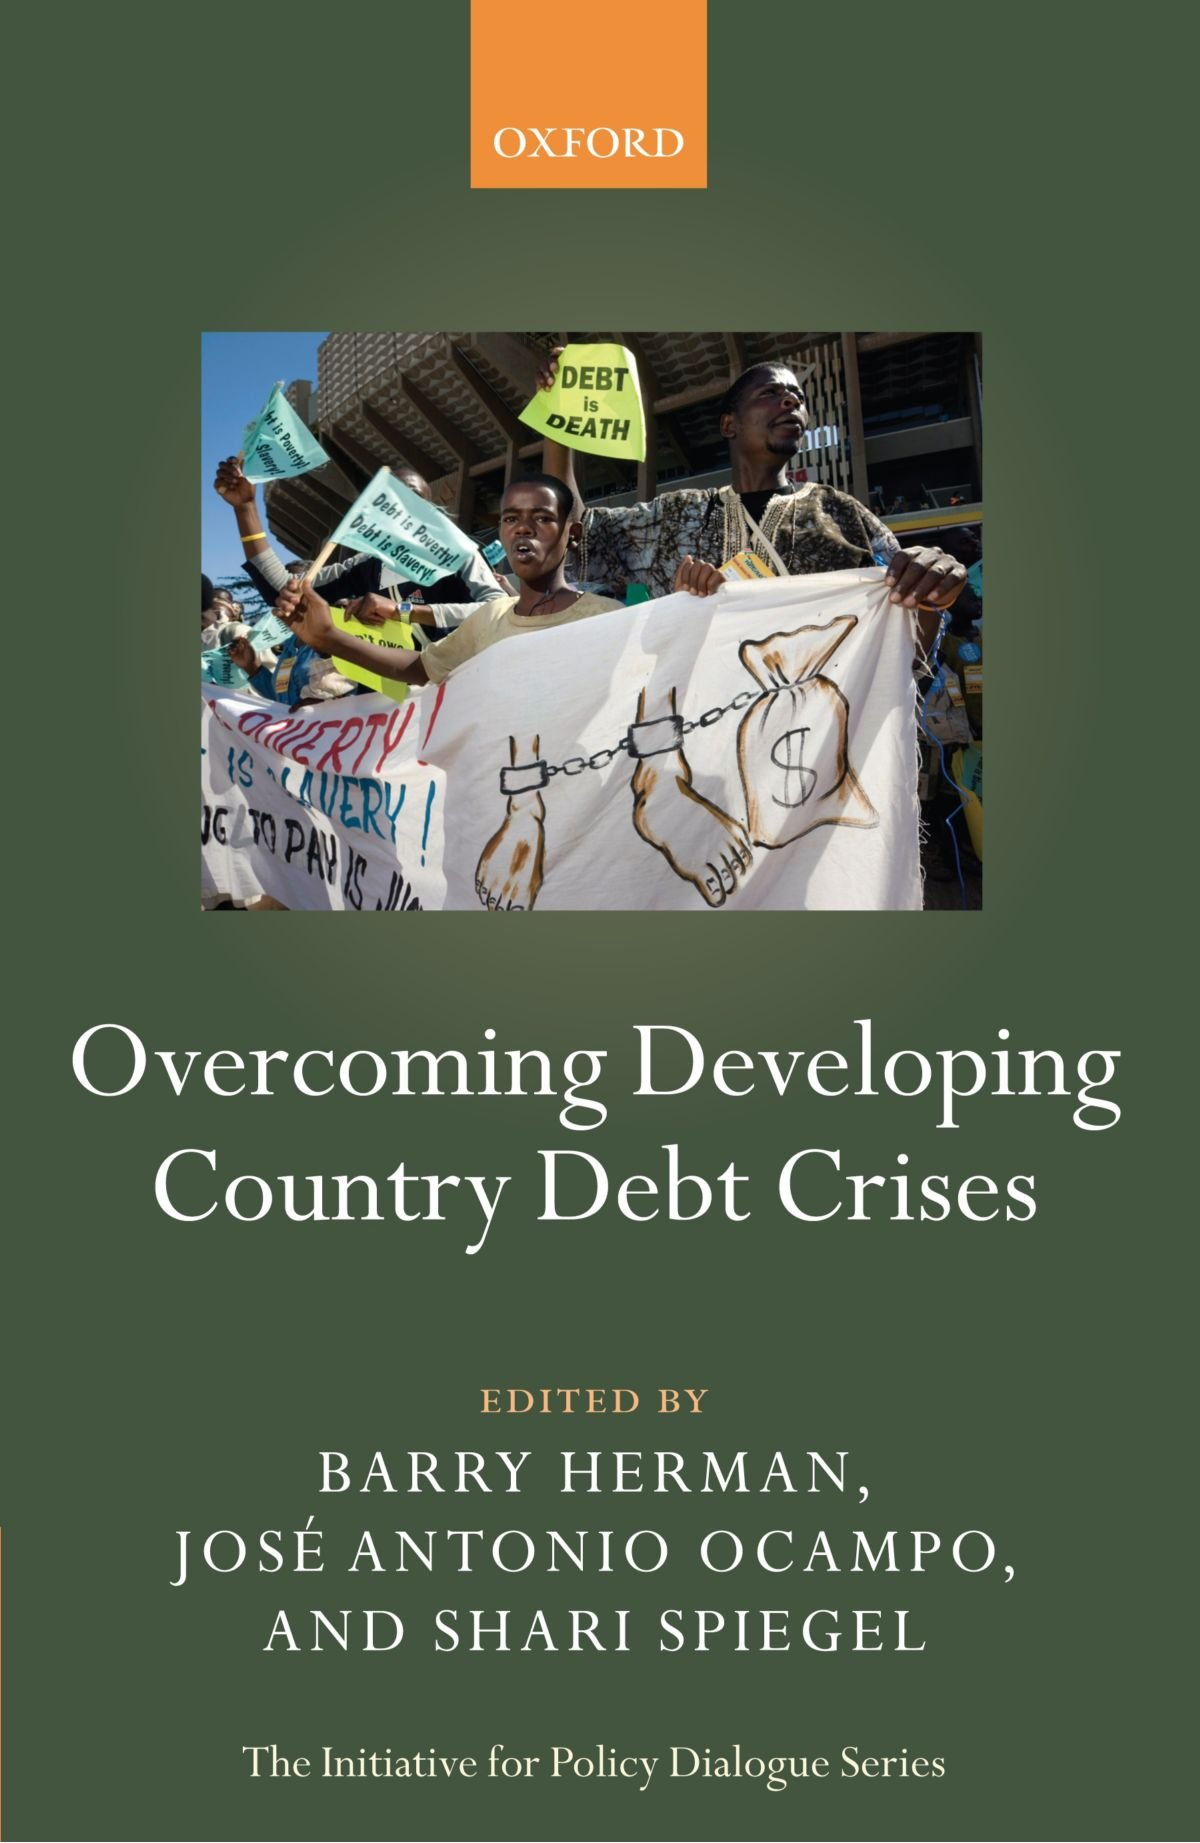 Overcoming Developing Country Debt Crises (Initiative for Policy Dialogue) by Oxford University Press